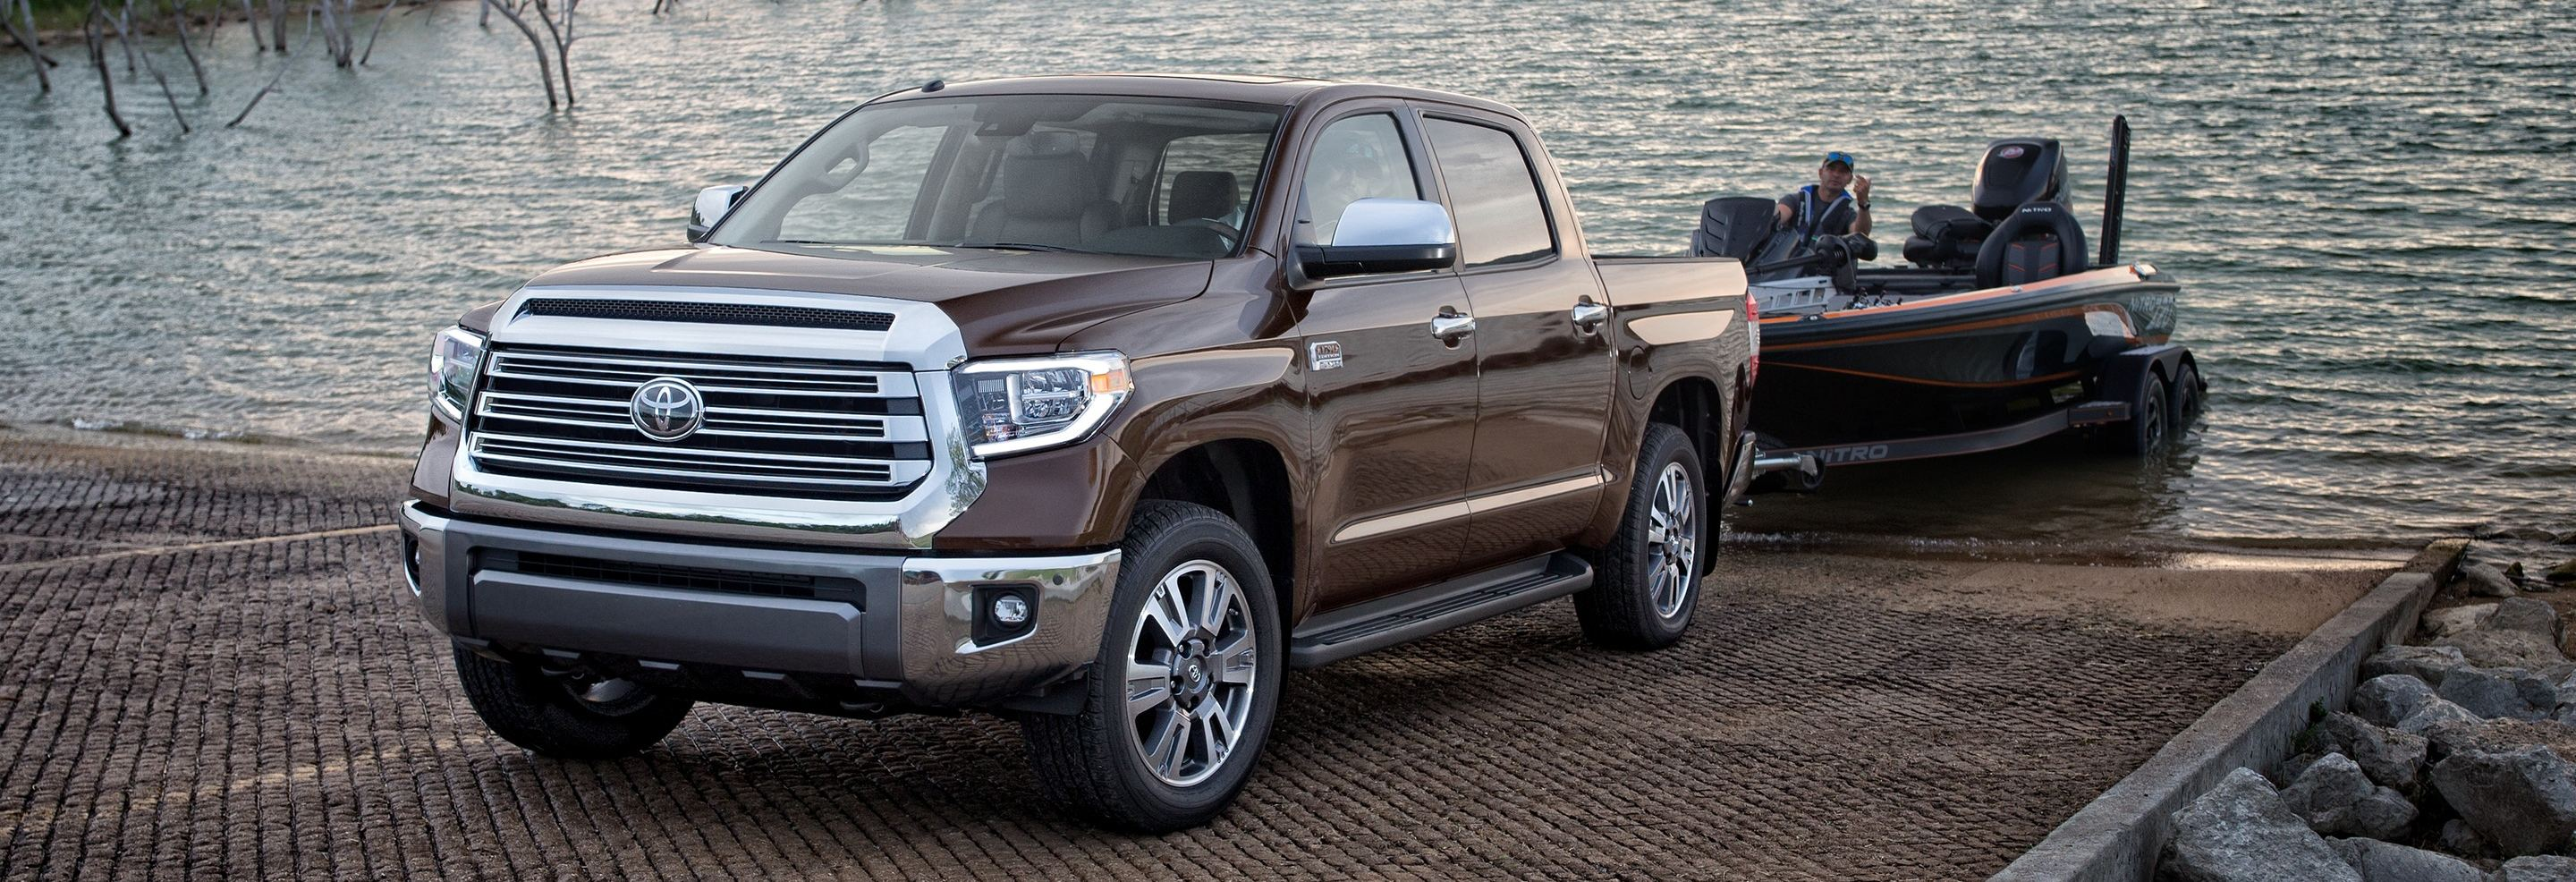 Used Trucks for Sale in Kansas City, MO, 64114